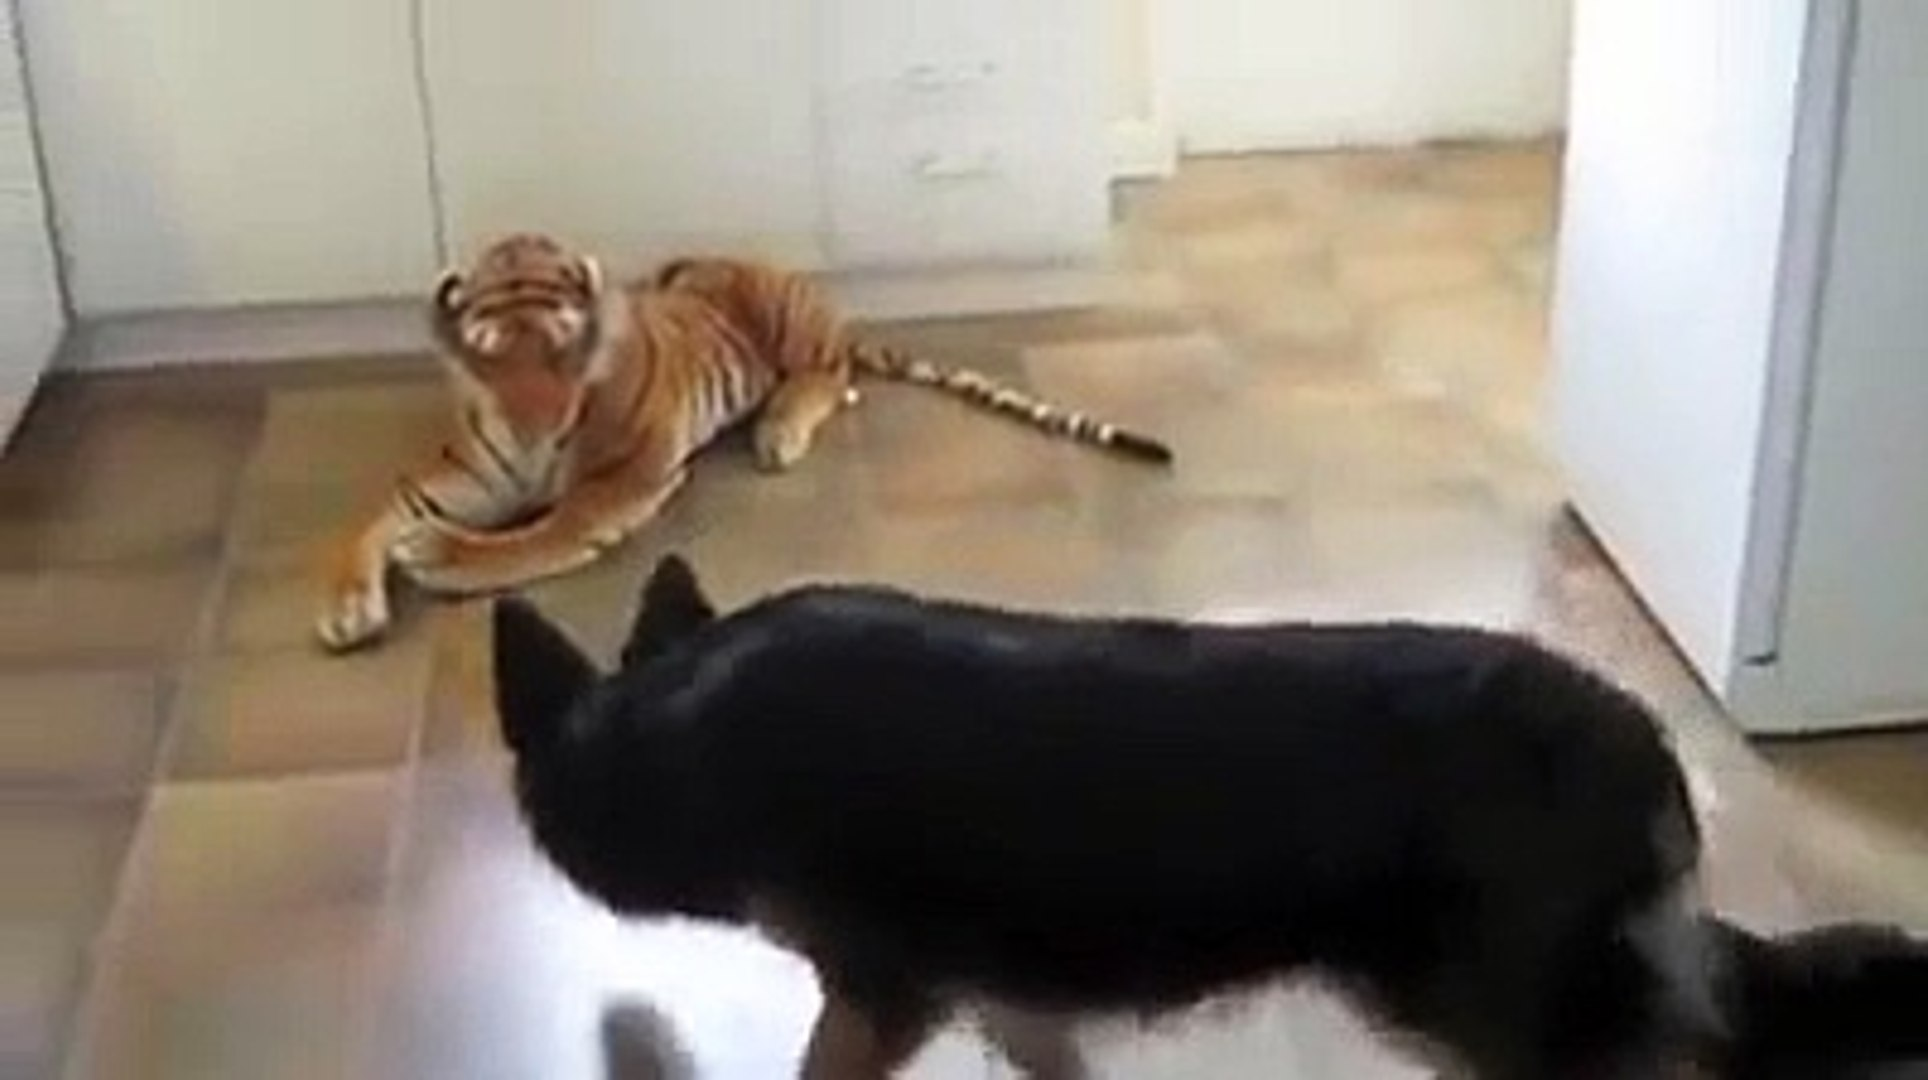 German Shepherd scared of Stuffed Toy Tiger. Very Funny! (ORIGINAL VIDEO